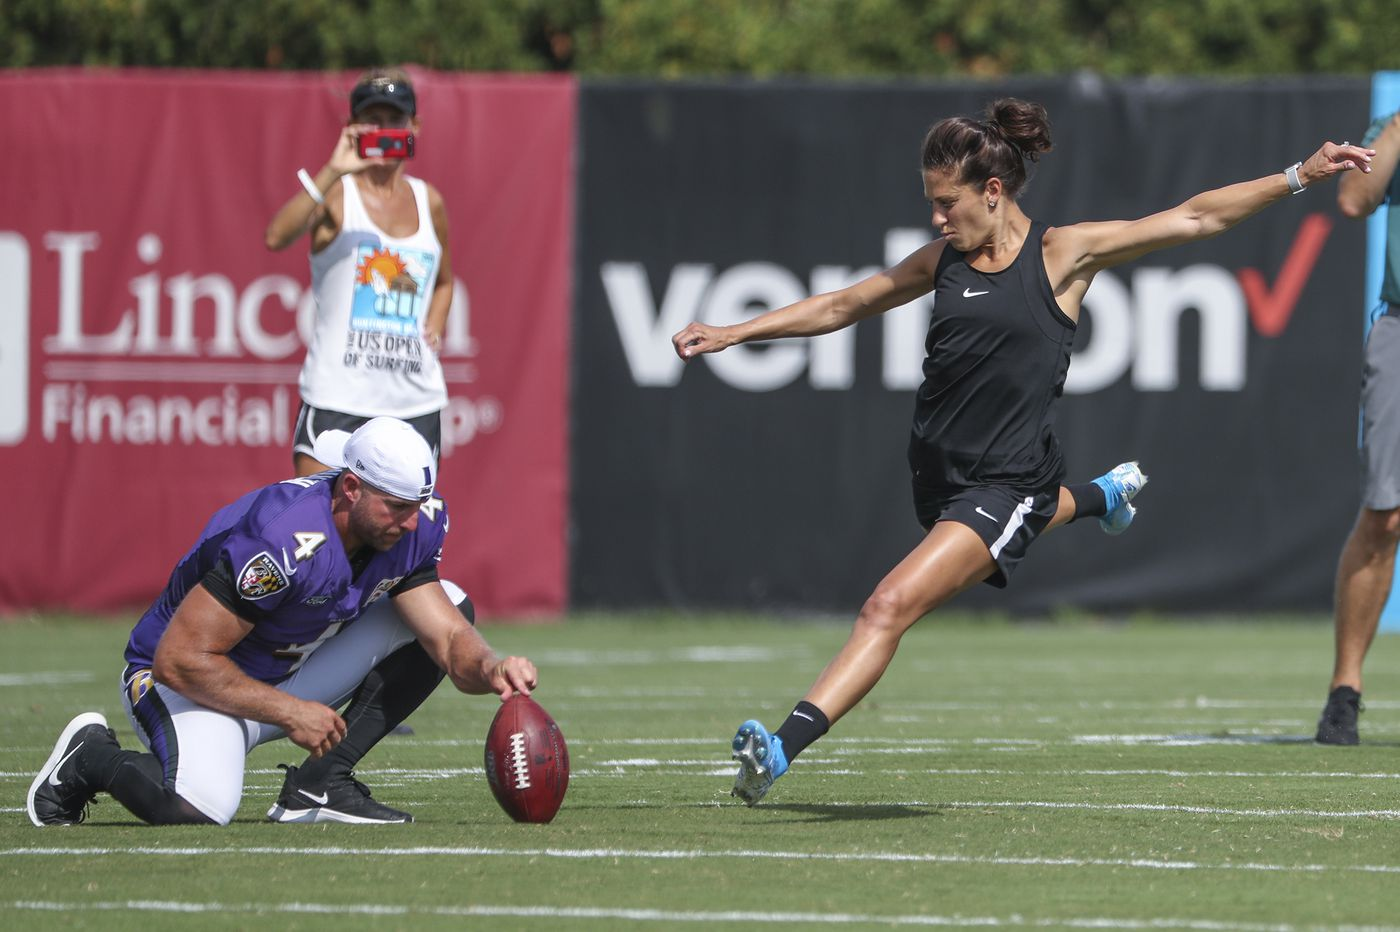 Carli Lloyd kicked a 55-yard field goal at the Eagles-Ravens joint practice